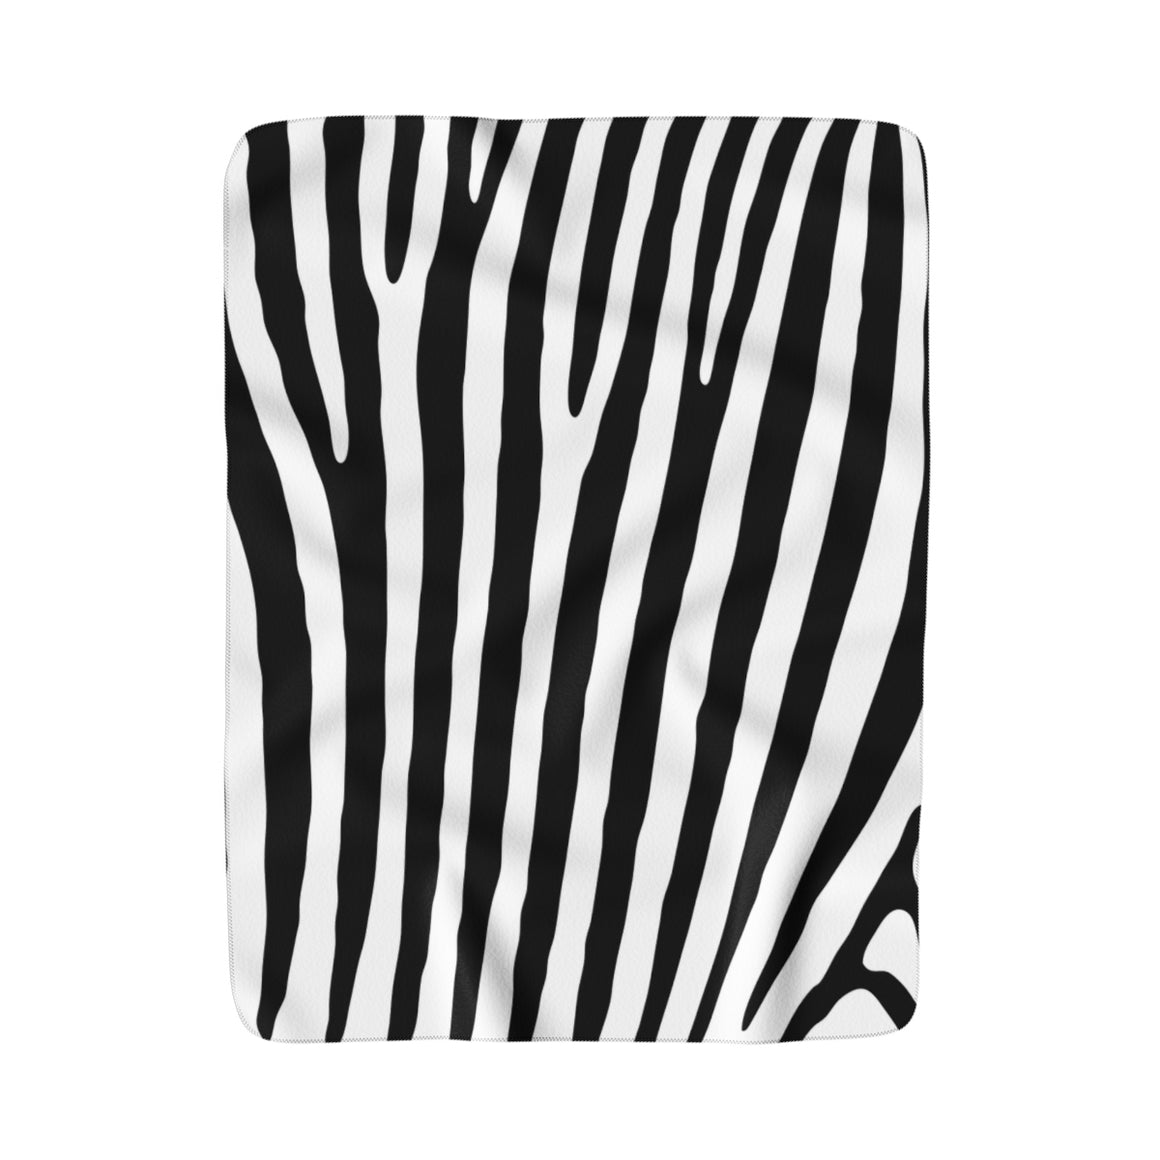 My Fabulous Style Made to Order Zebra  Sherpa Fleece Blanket-Luxurious Fleece Blanket